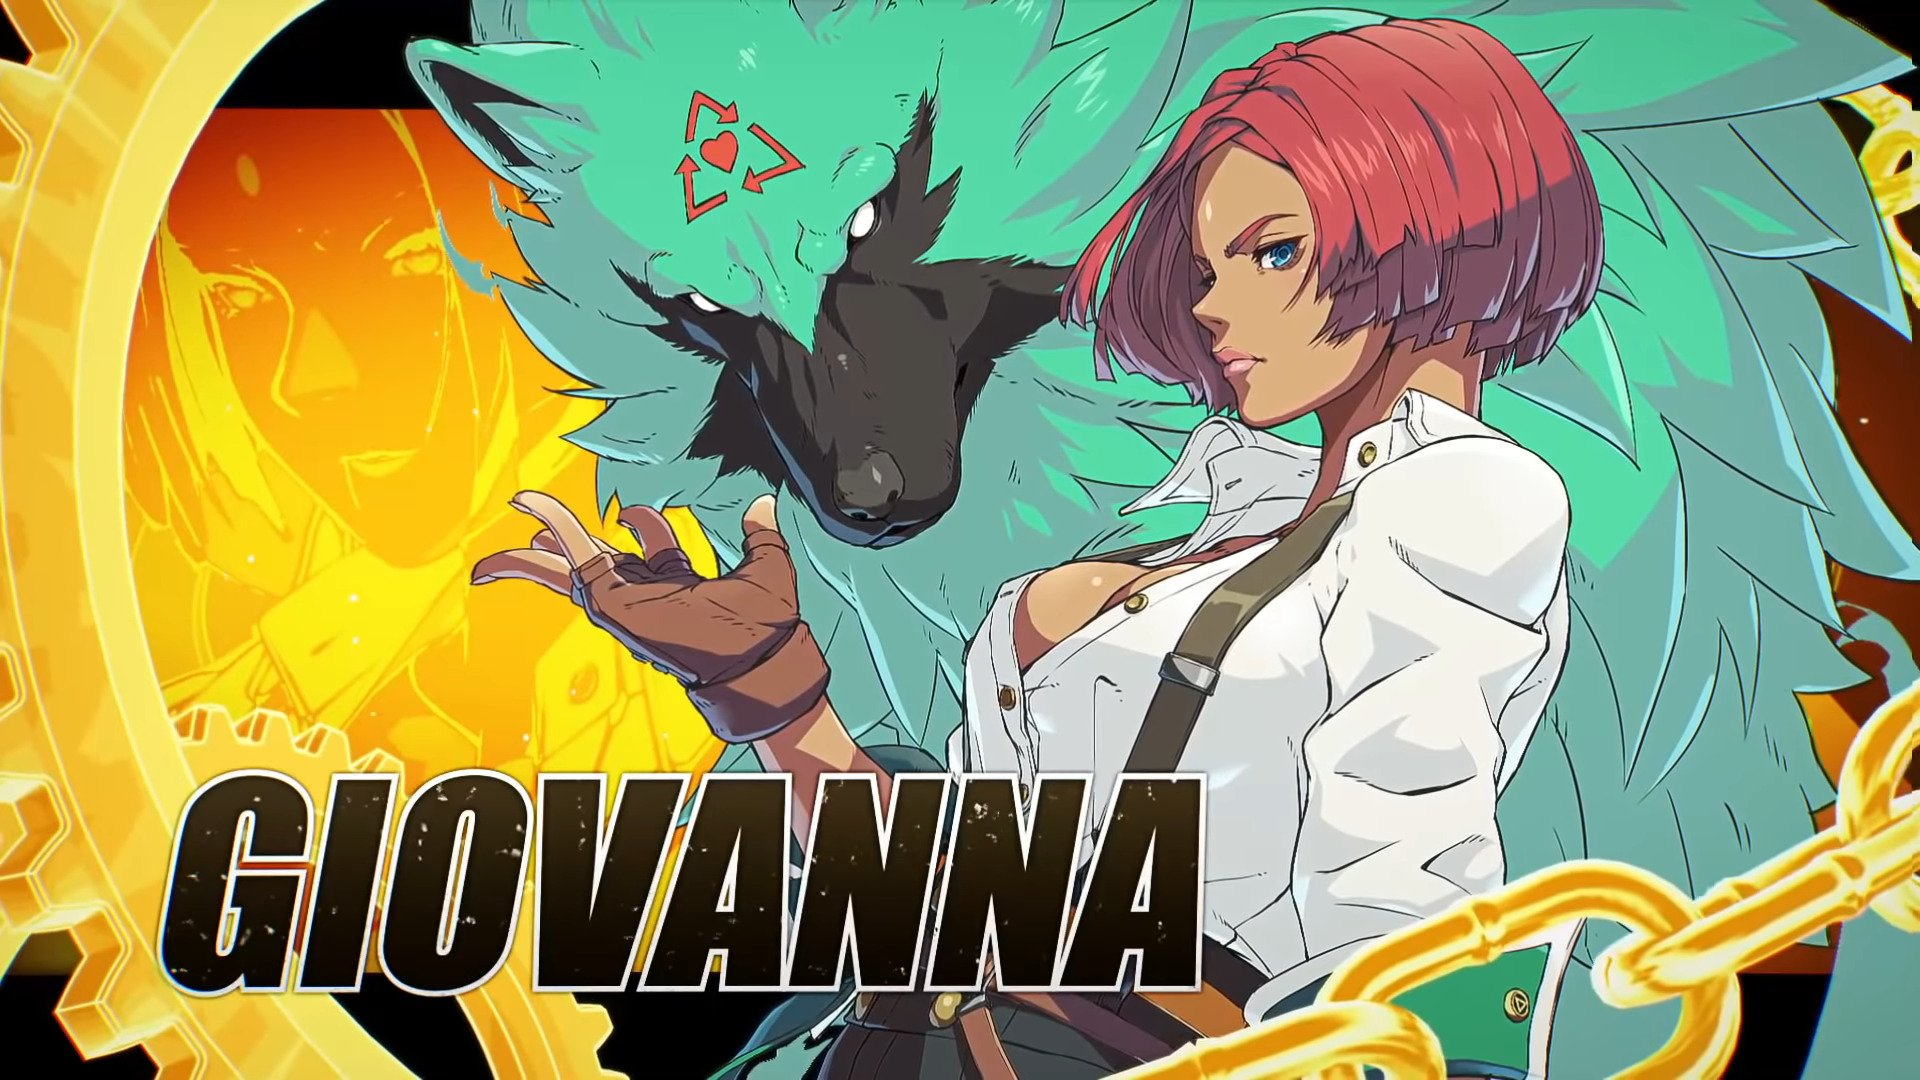 Arc System Works Reveals Giovanna For GuiltyGear Strive, Already Teased The Next Fighter